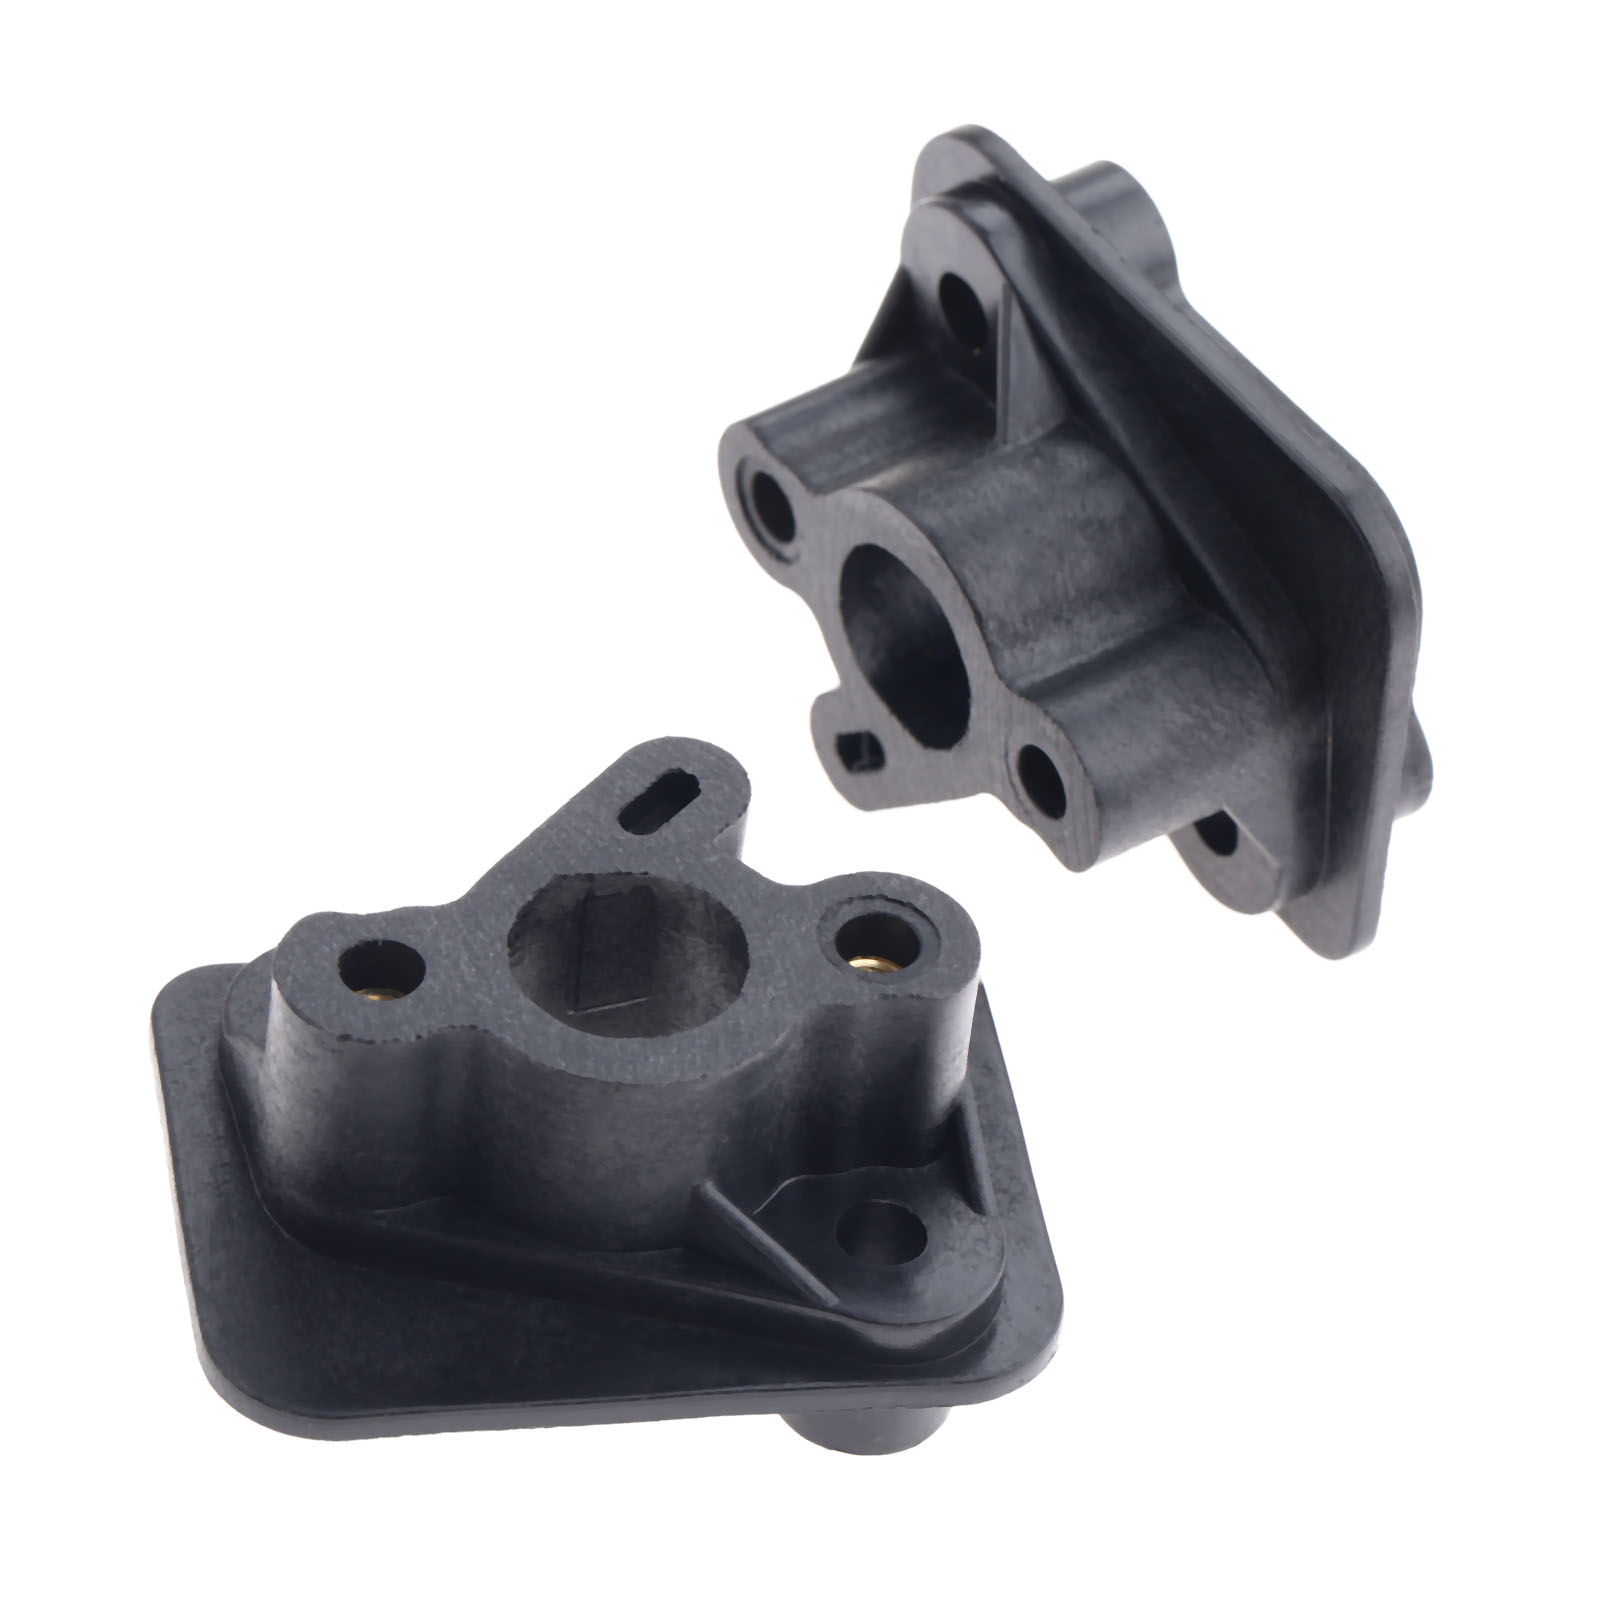 DRELD 2Pcs 40-5 43CC 52CC Brush Cutter Intake Manifold Carburetor Base Connector Admitting Pipe Carb Adaptor Garden Tool Parts high quality replacement carburetor parts tool fit for 250 xv250 1988 2014 carb